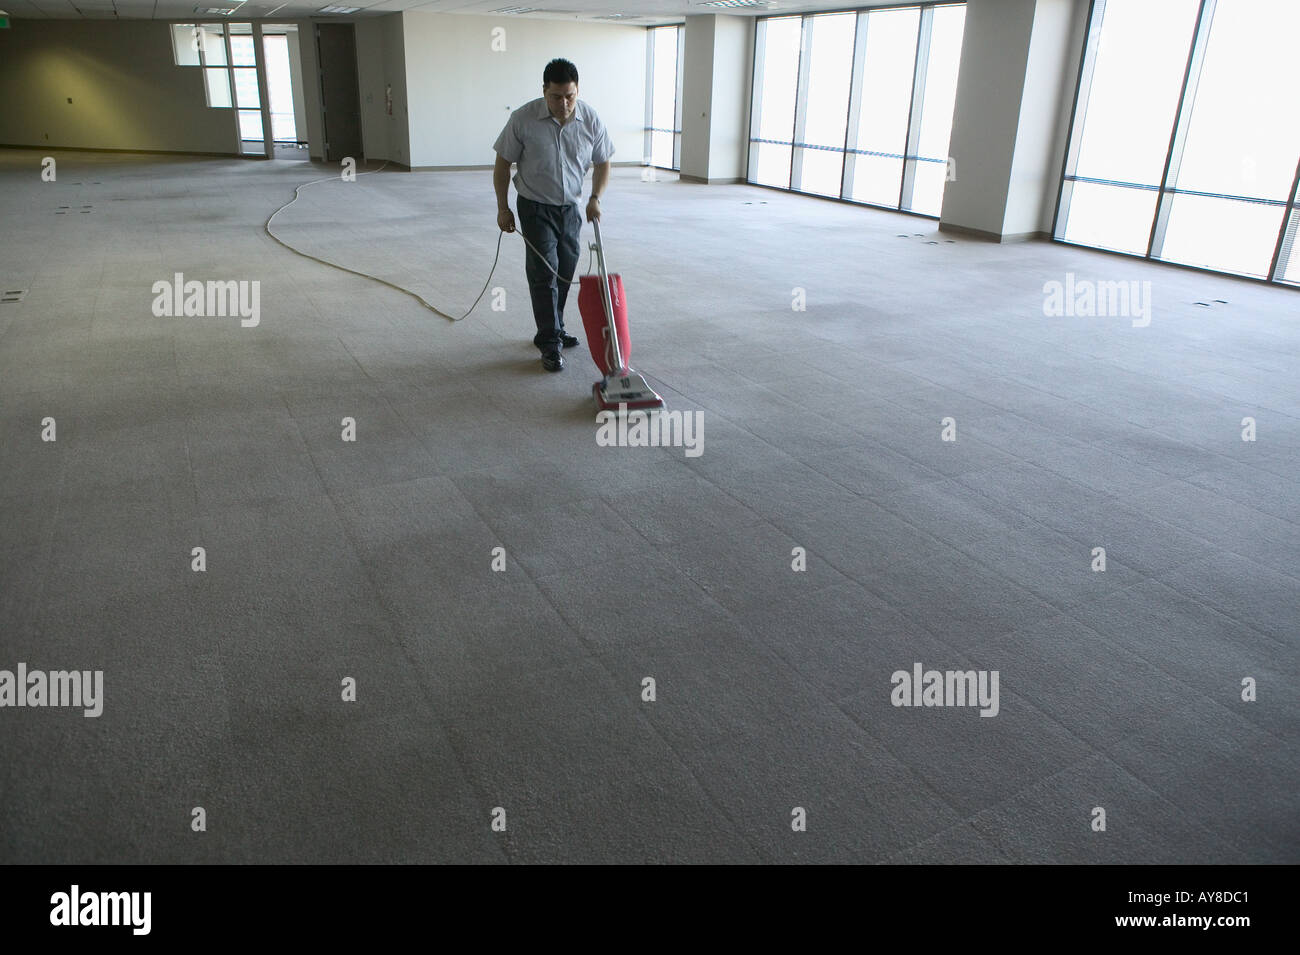 Vacant office building is being vacuumed by janitor after company moved out or about to move in - Stock Image